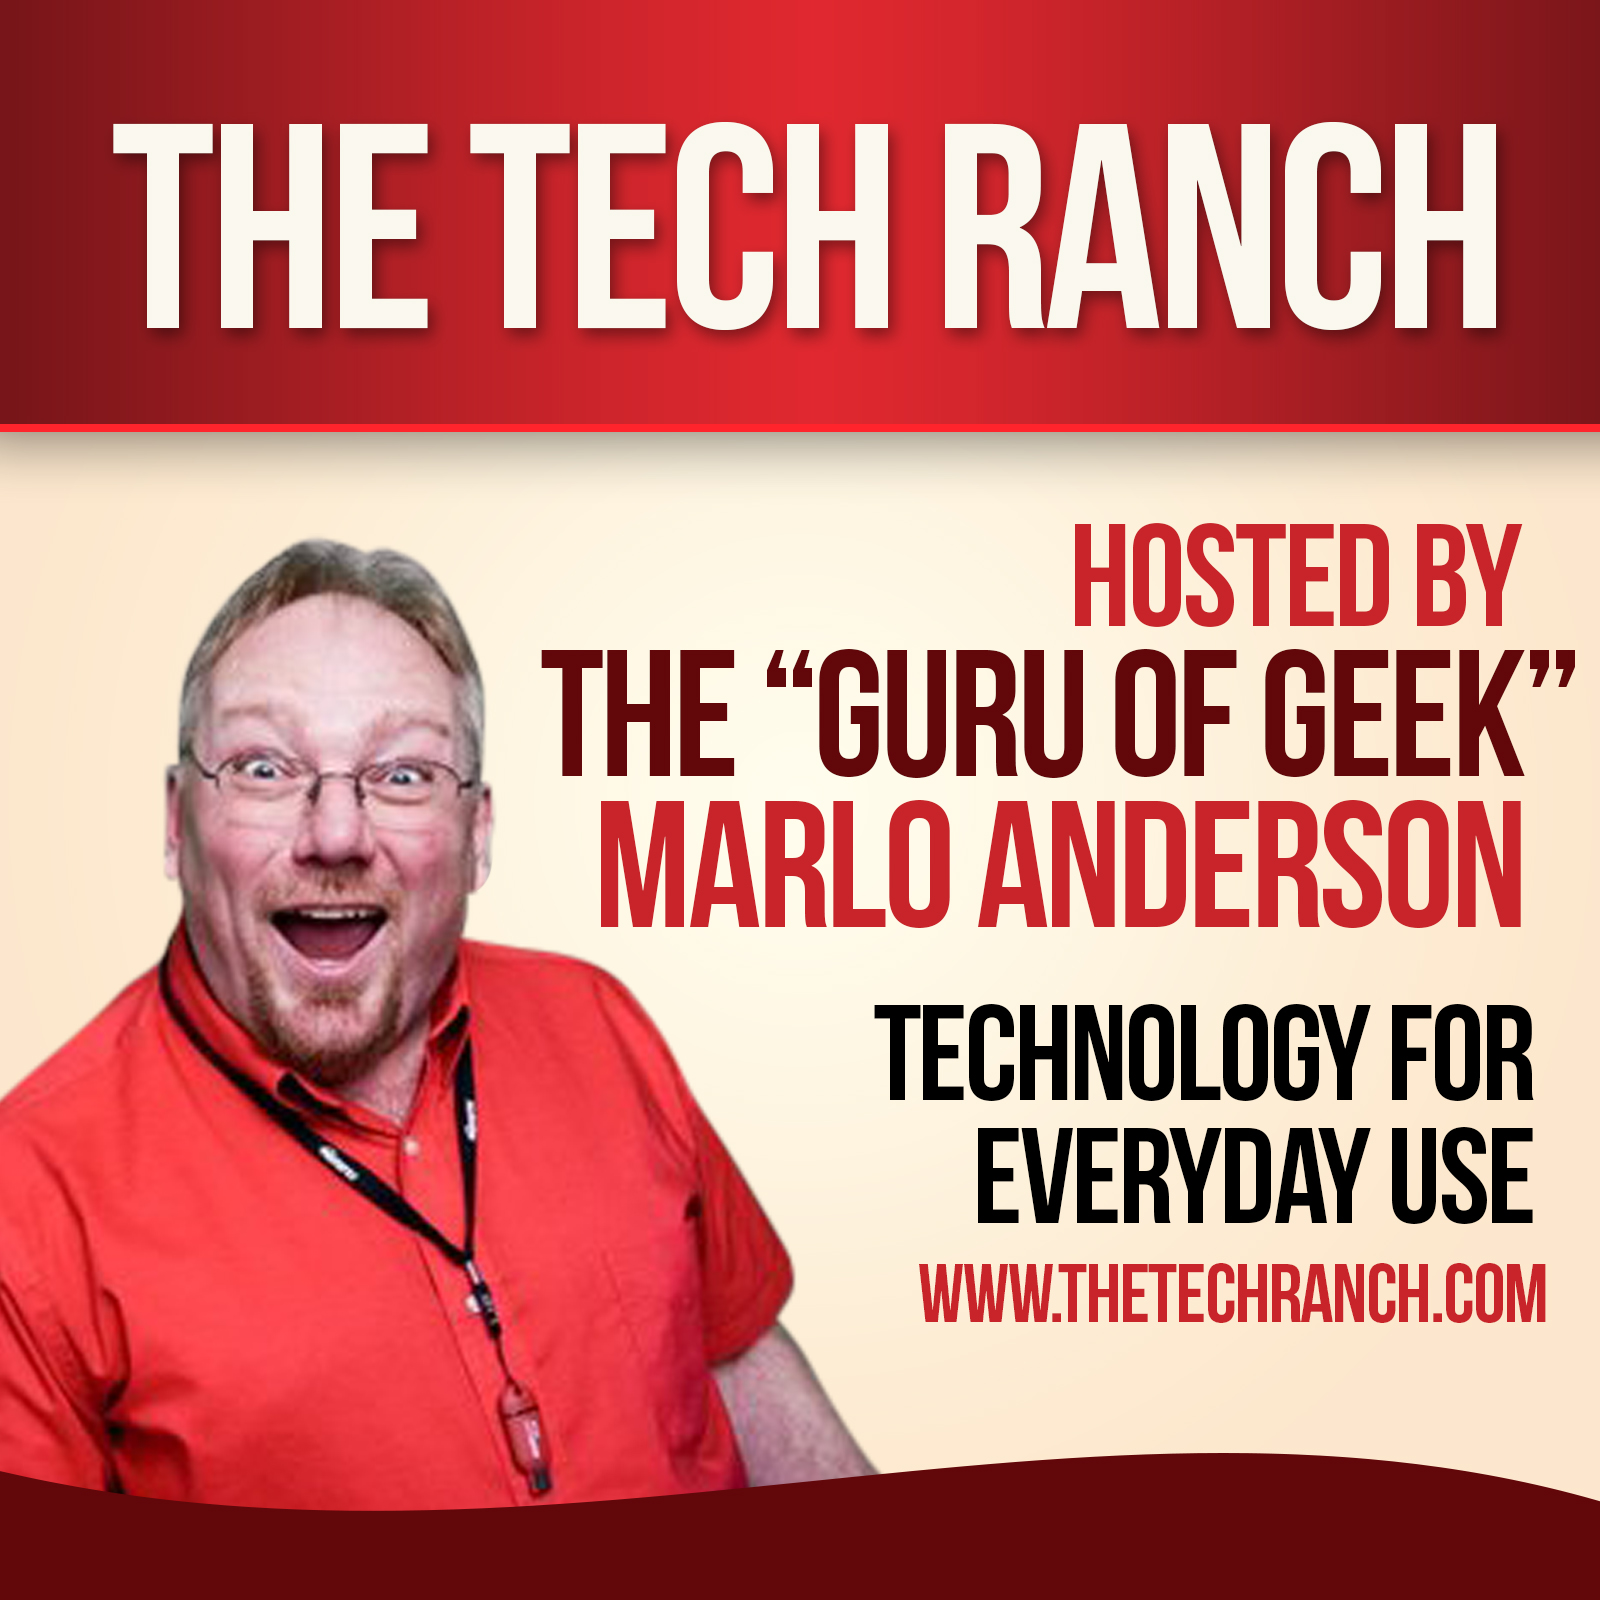 The Tech Ranch Podcasts – The Tech Ranch